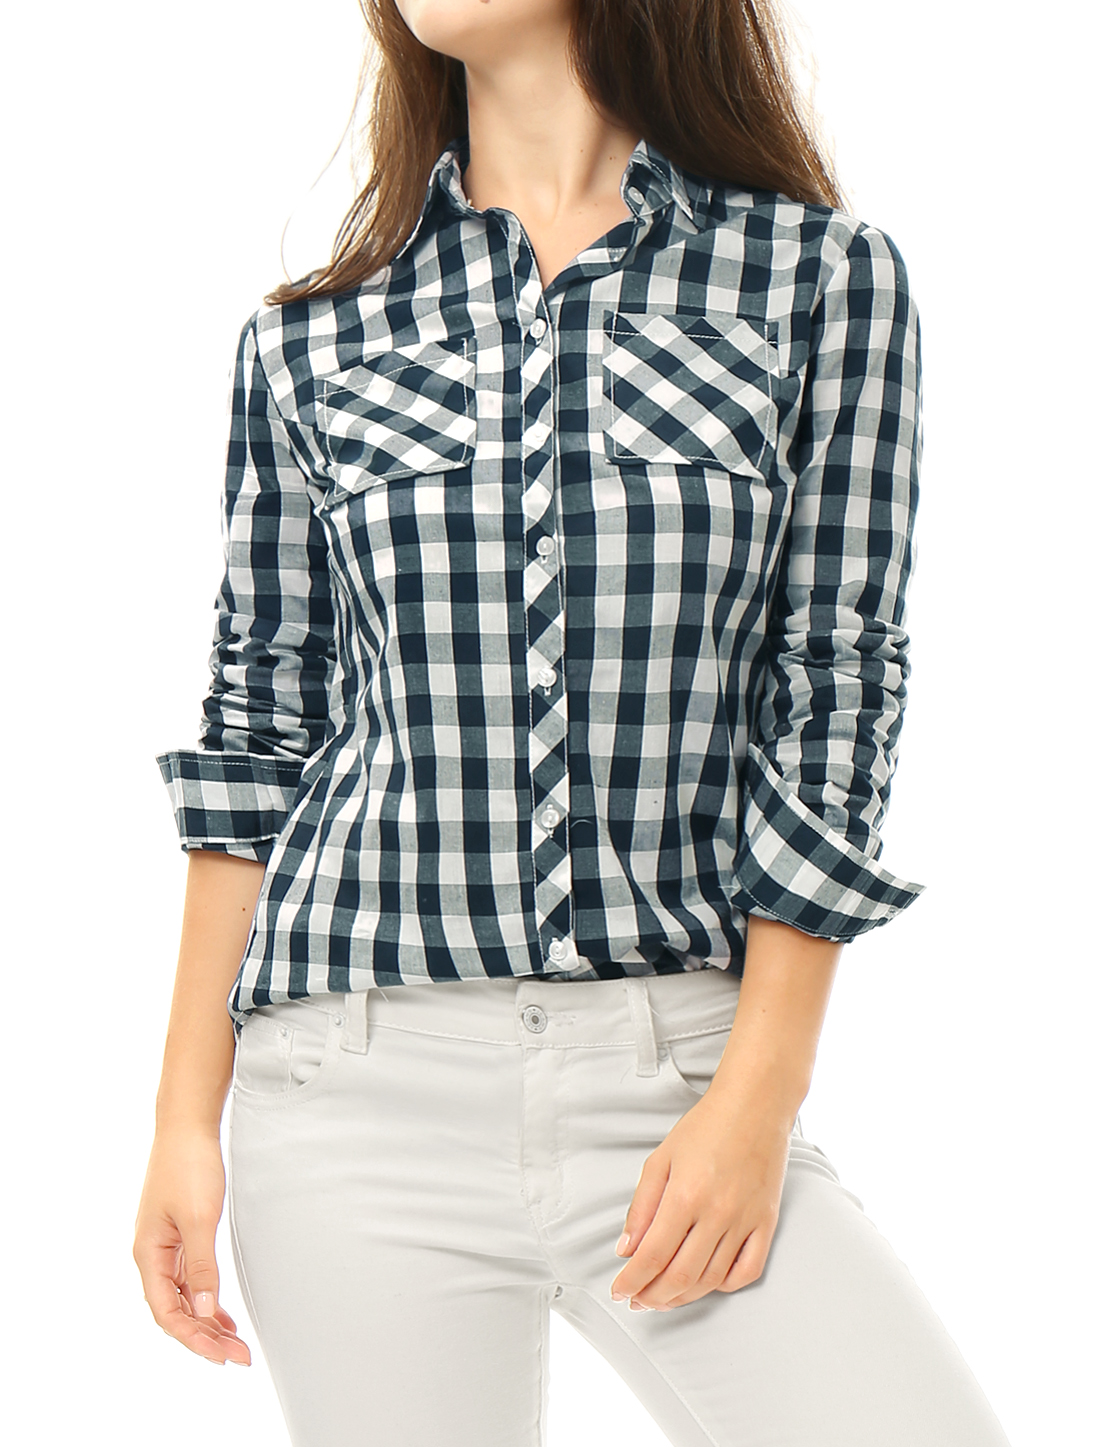 Women Bust Pockets Button Up Cotton Plaids Shirt Blue S